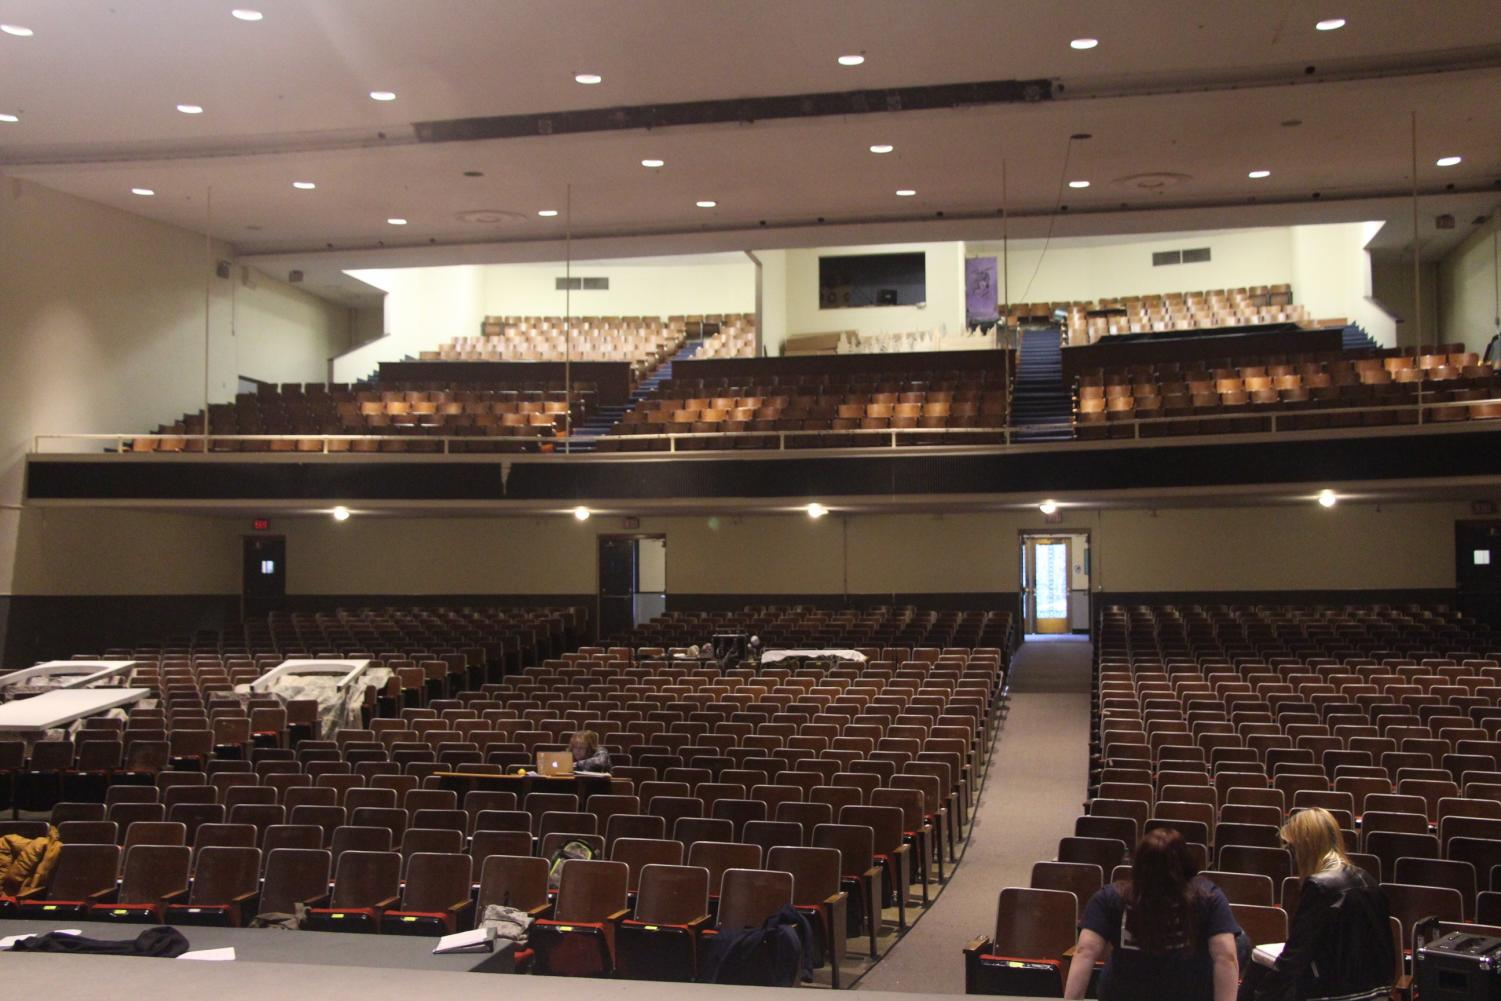 The auditorium at Gresham high school that will be torn down soon. It contains many memories of past productions and people working really hard to make them as best as they can.